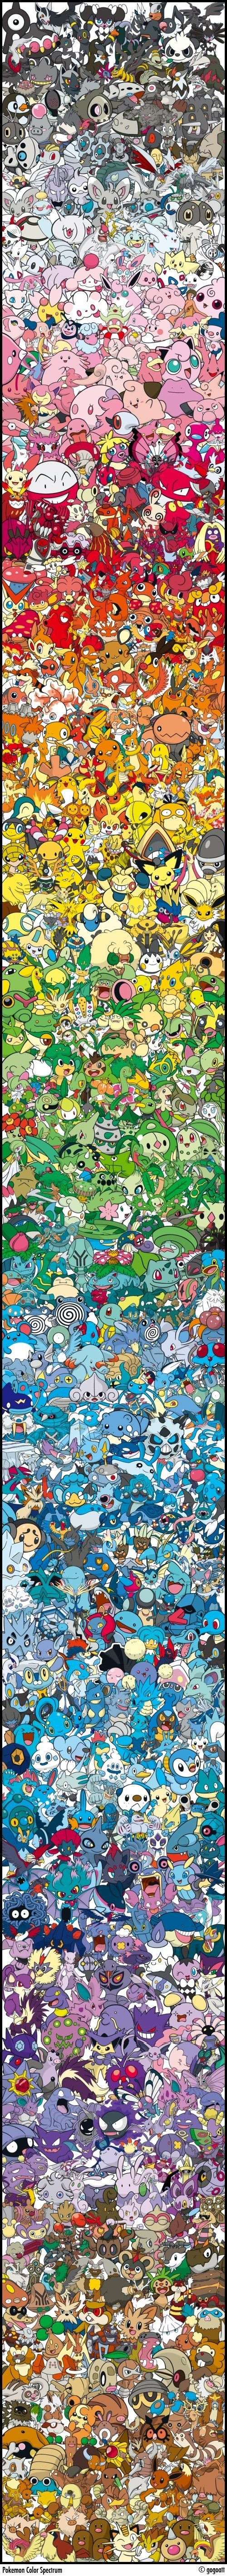 Pokemon Color Spectrum  #Pokemon